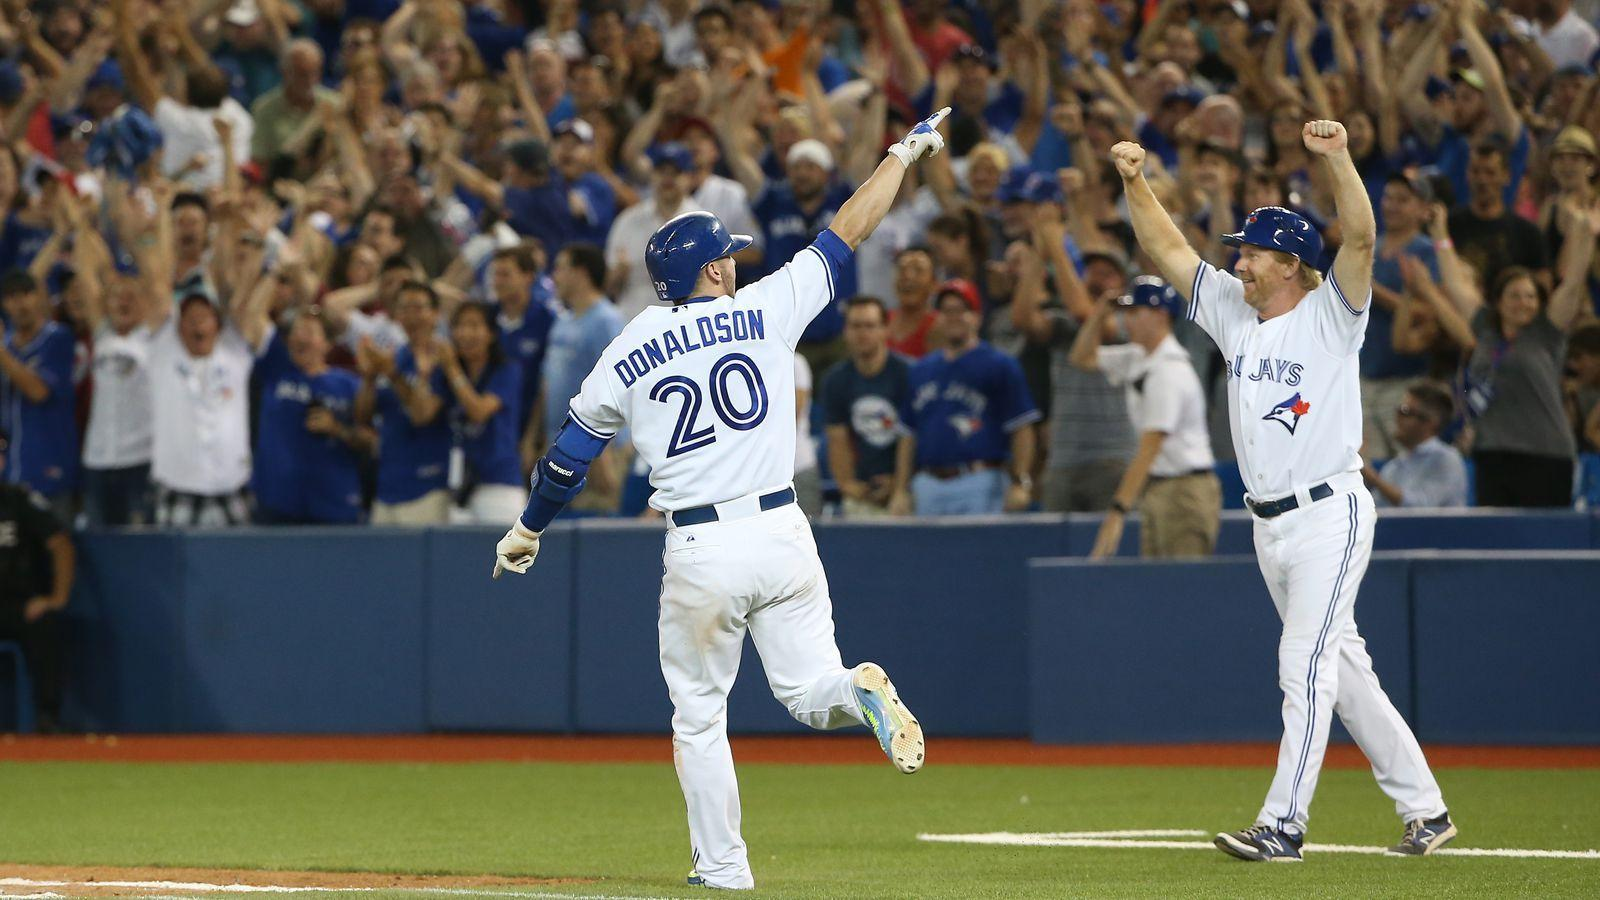 Josh Donaldson added even more power